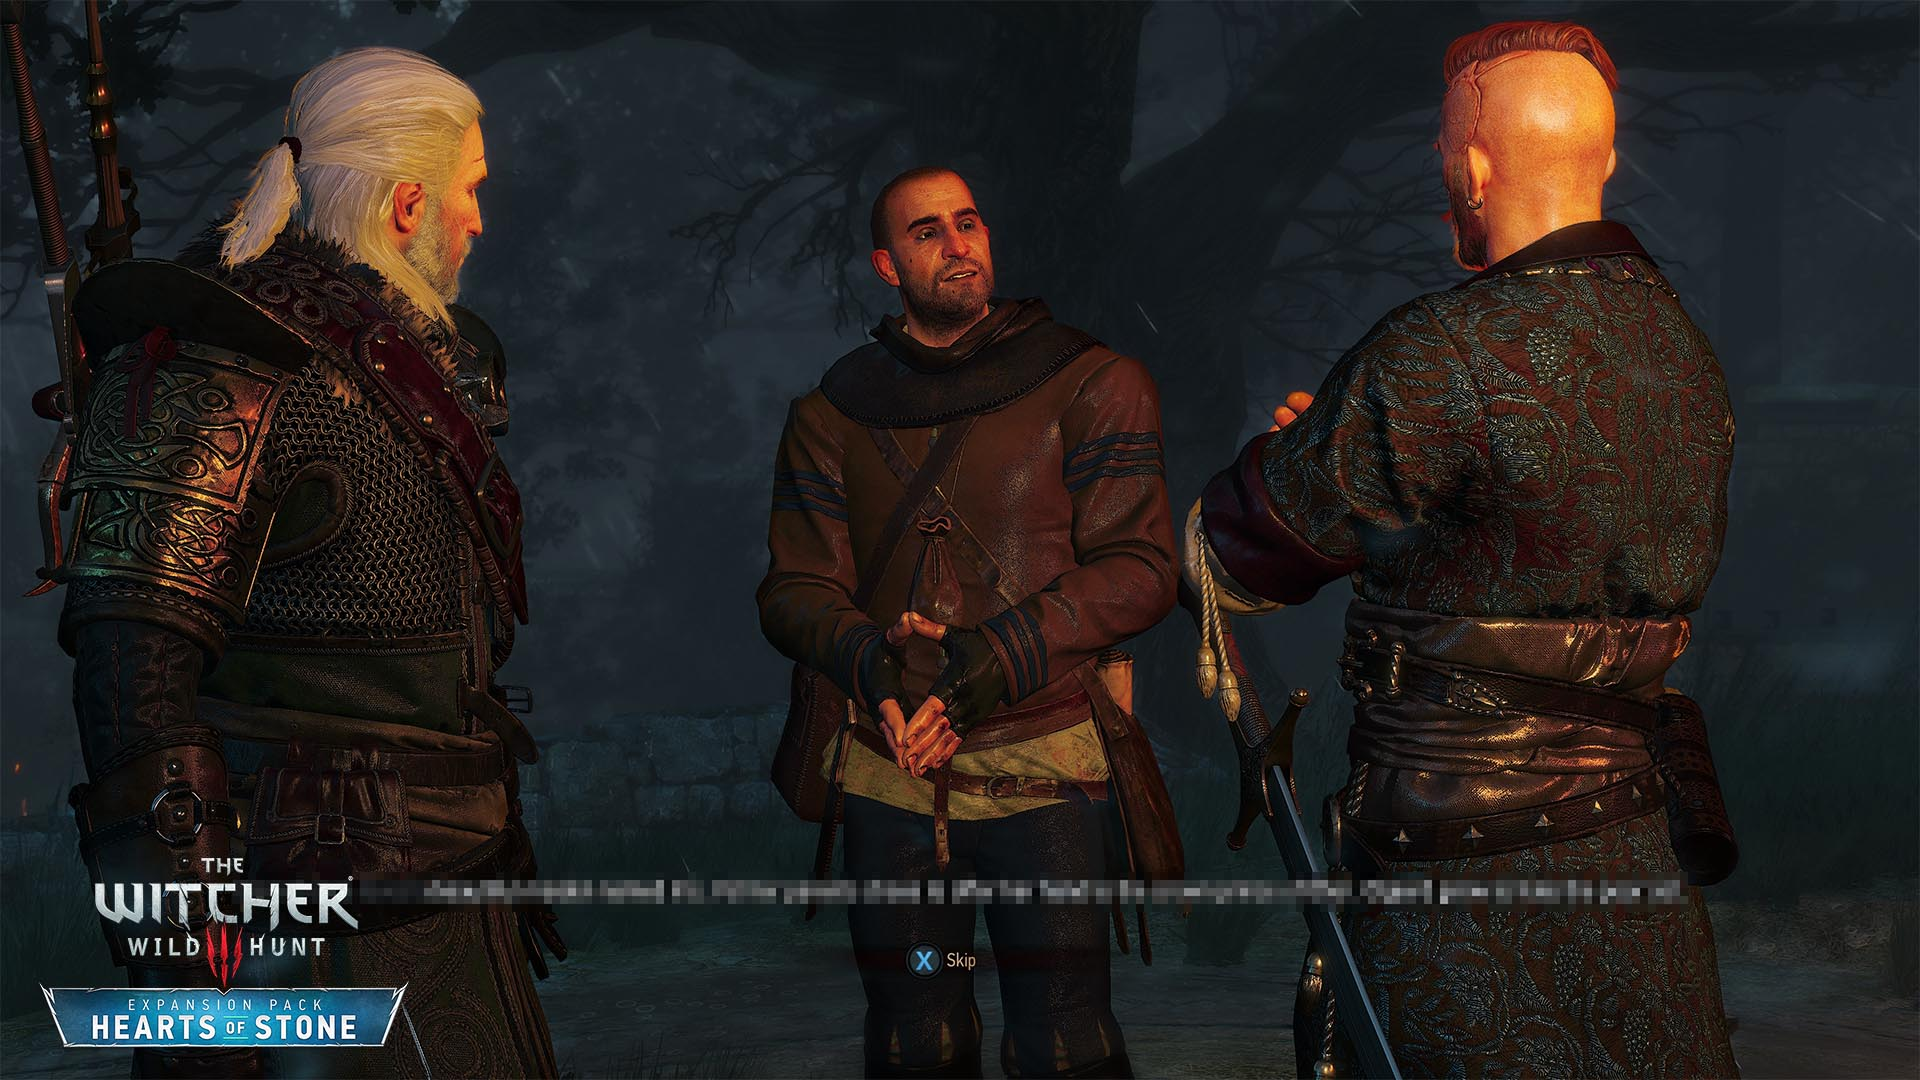 The_Witcher_3_Wild_Hunt_Hearts_of_Stone_Trust_me_after_all_mirrors_never_lie_EN